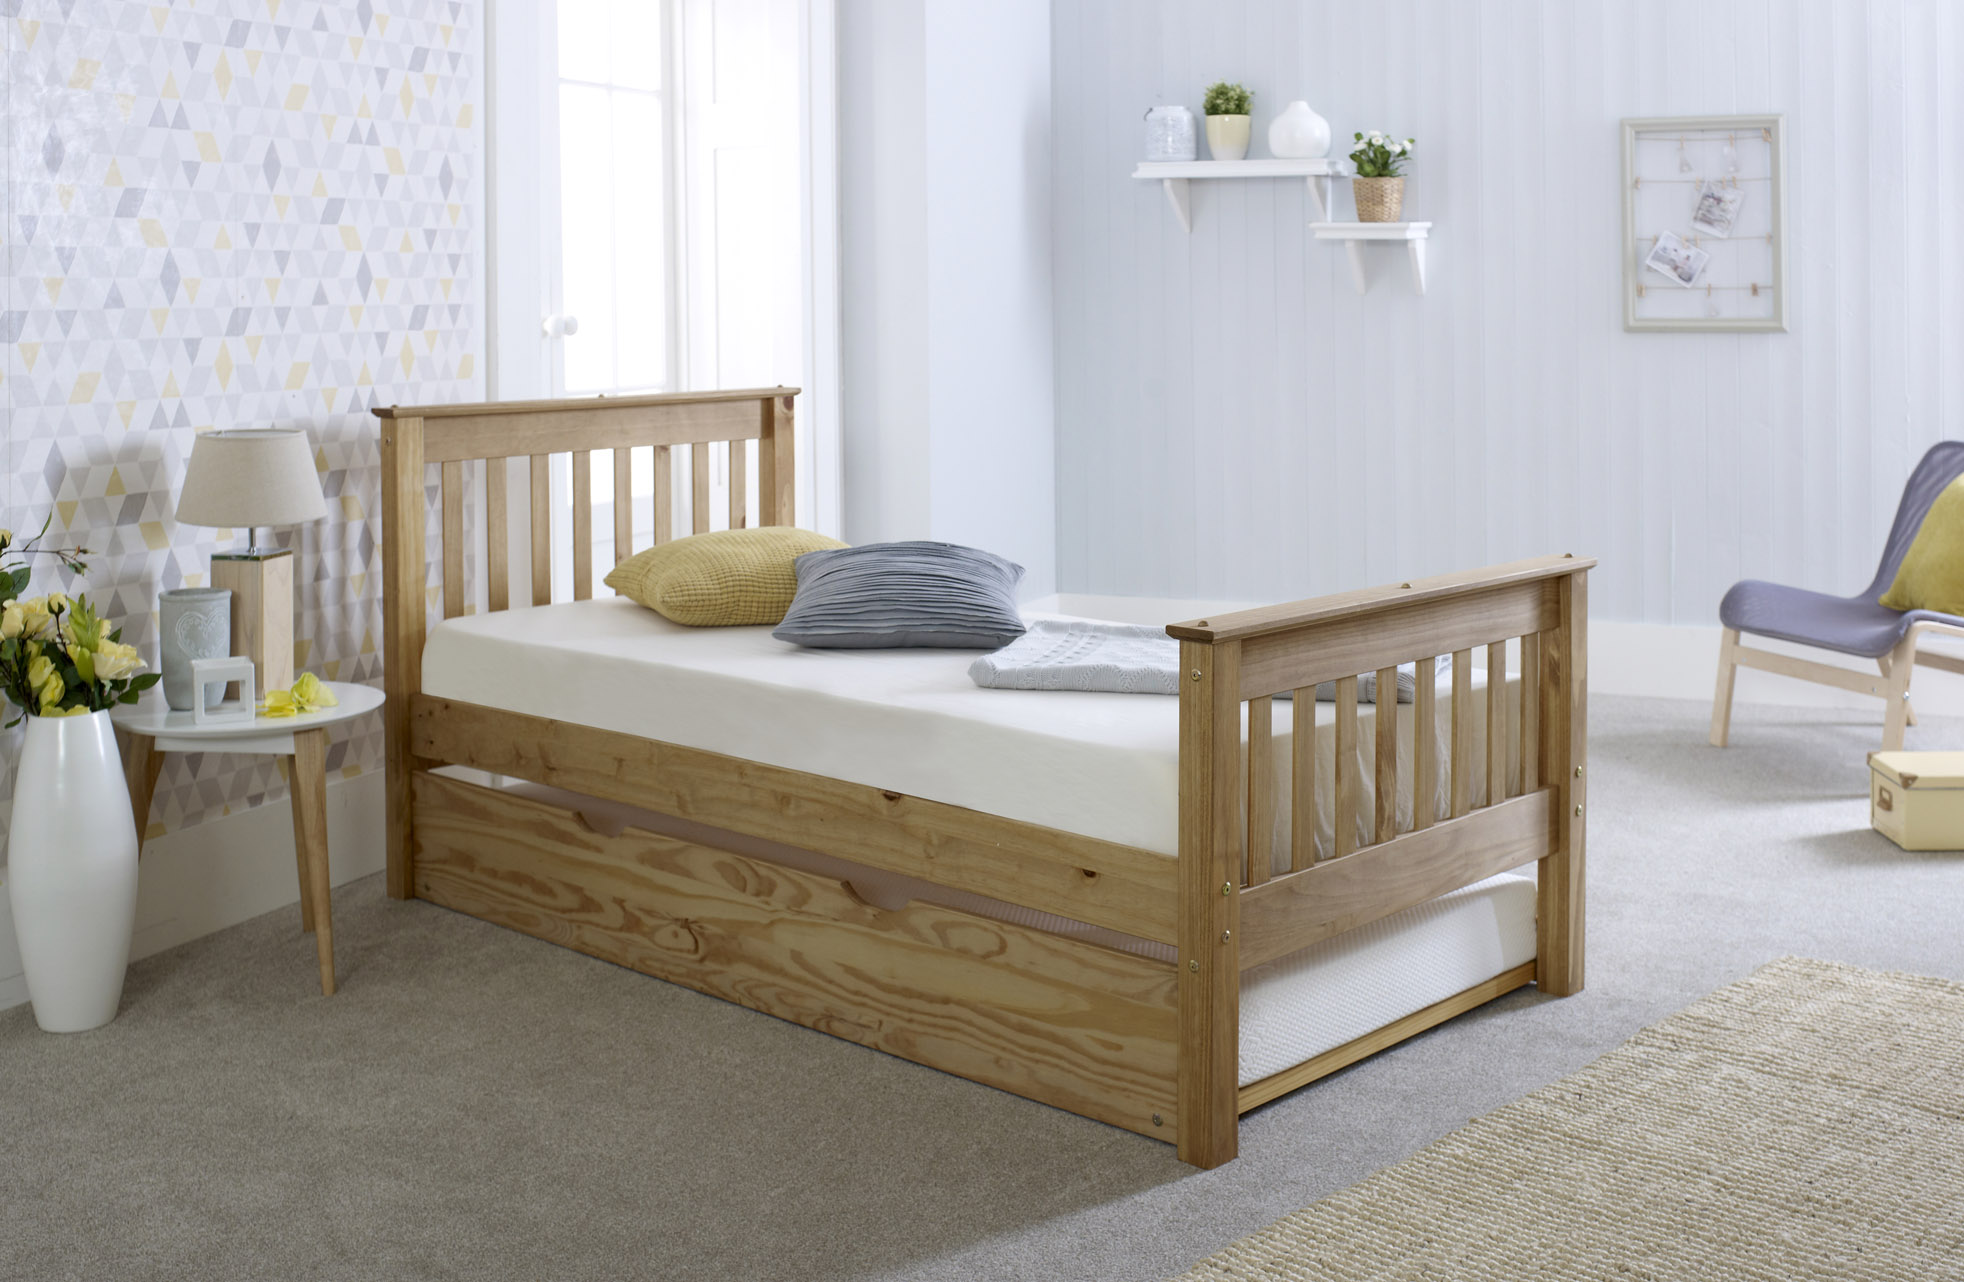 3FT Somerset Bed with Trundle